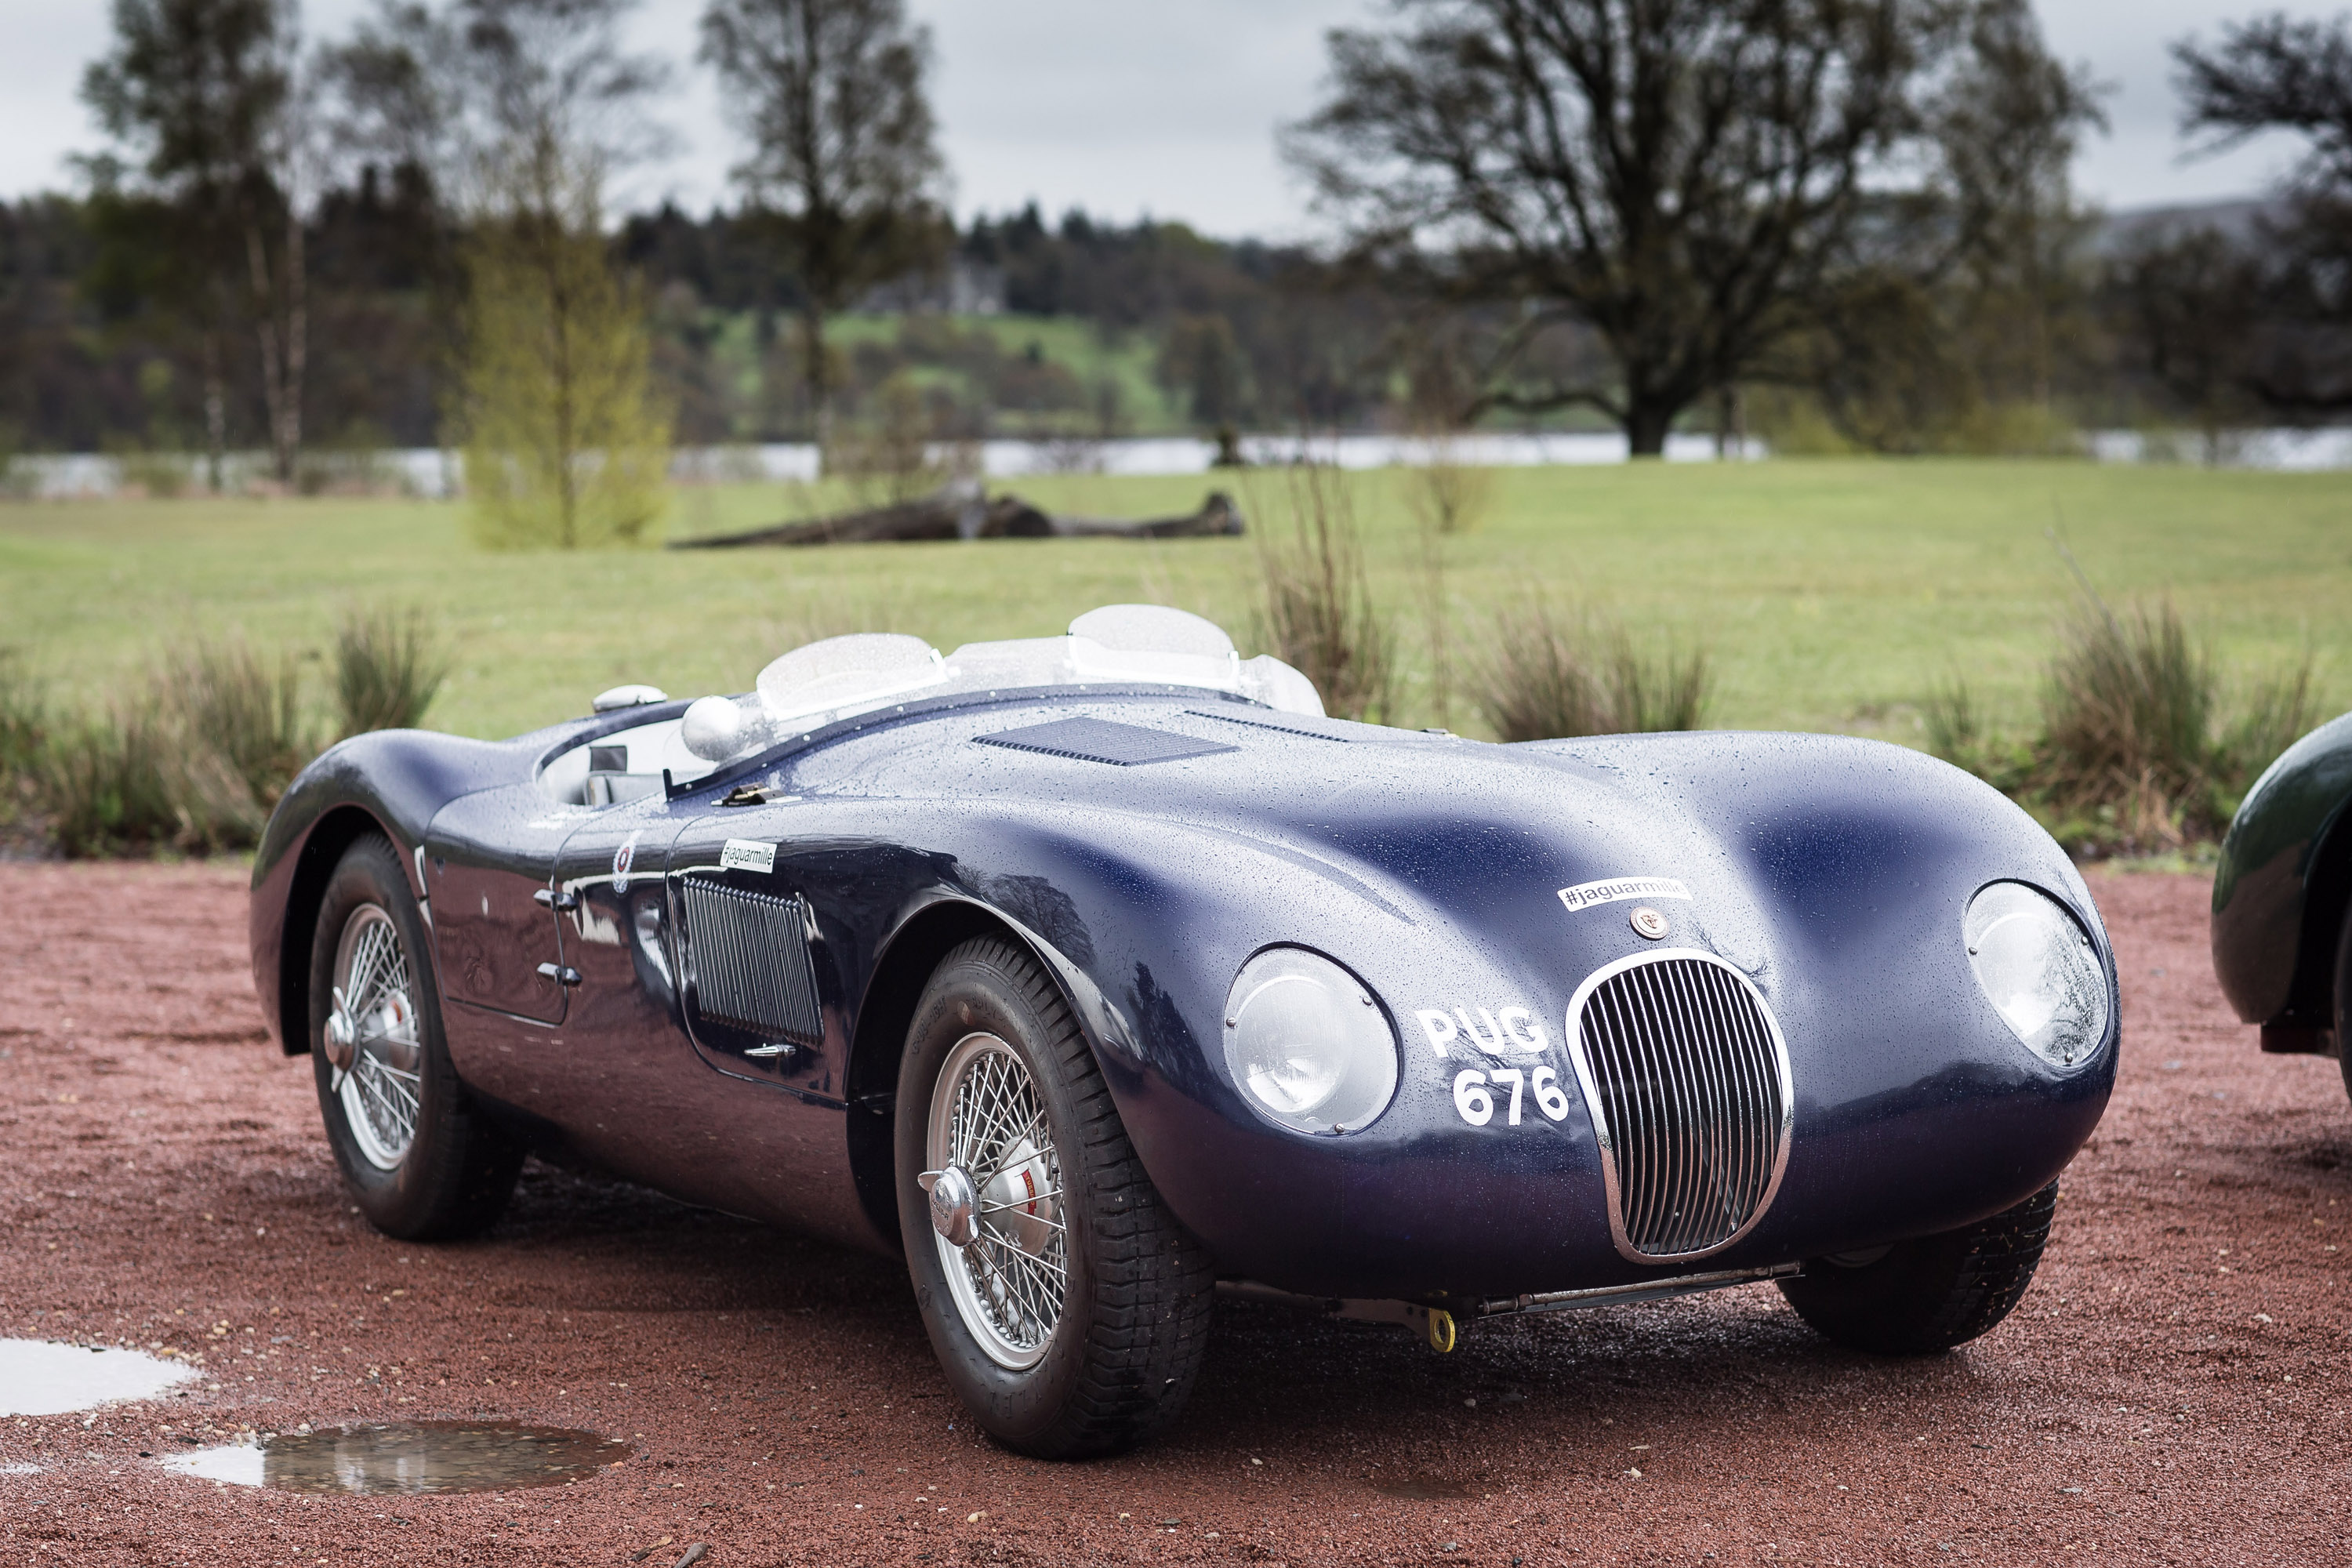 Classic Jaguar Models Come To Mille Migia